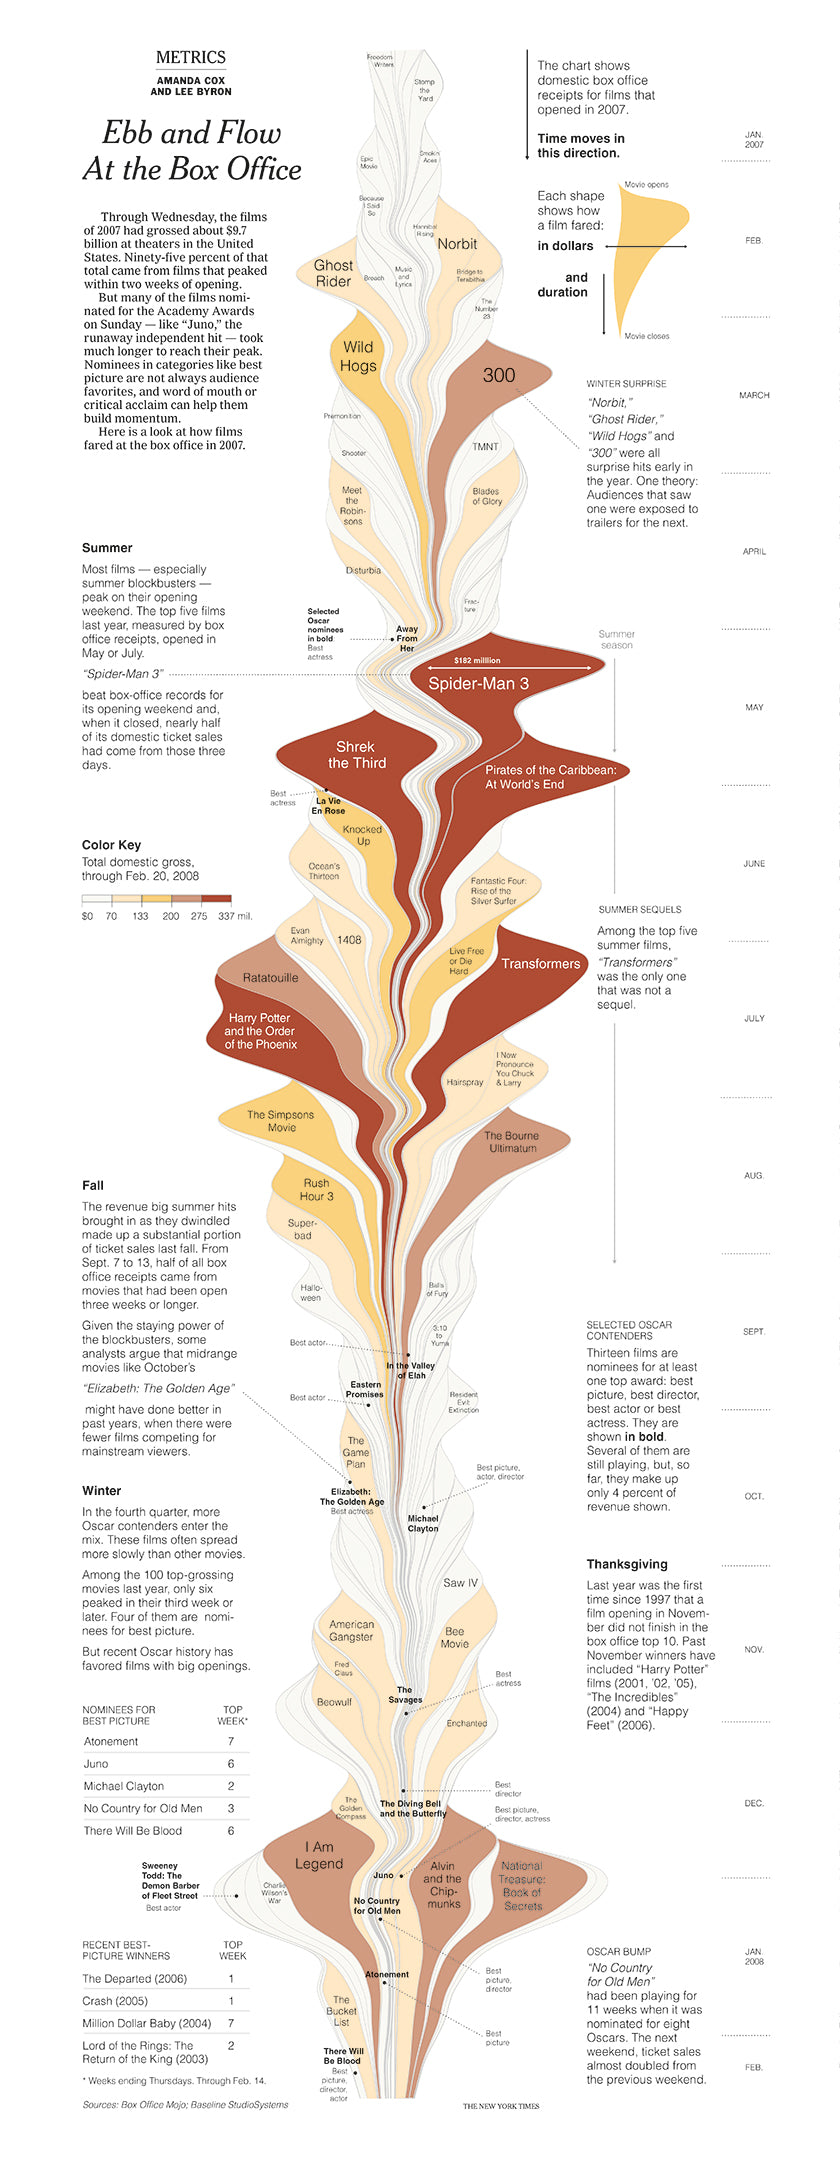 Visualizing A New, New York Times